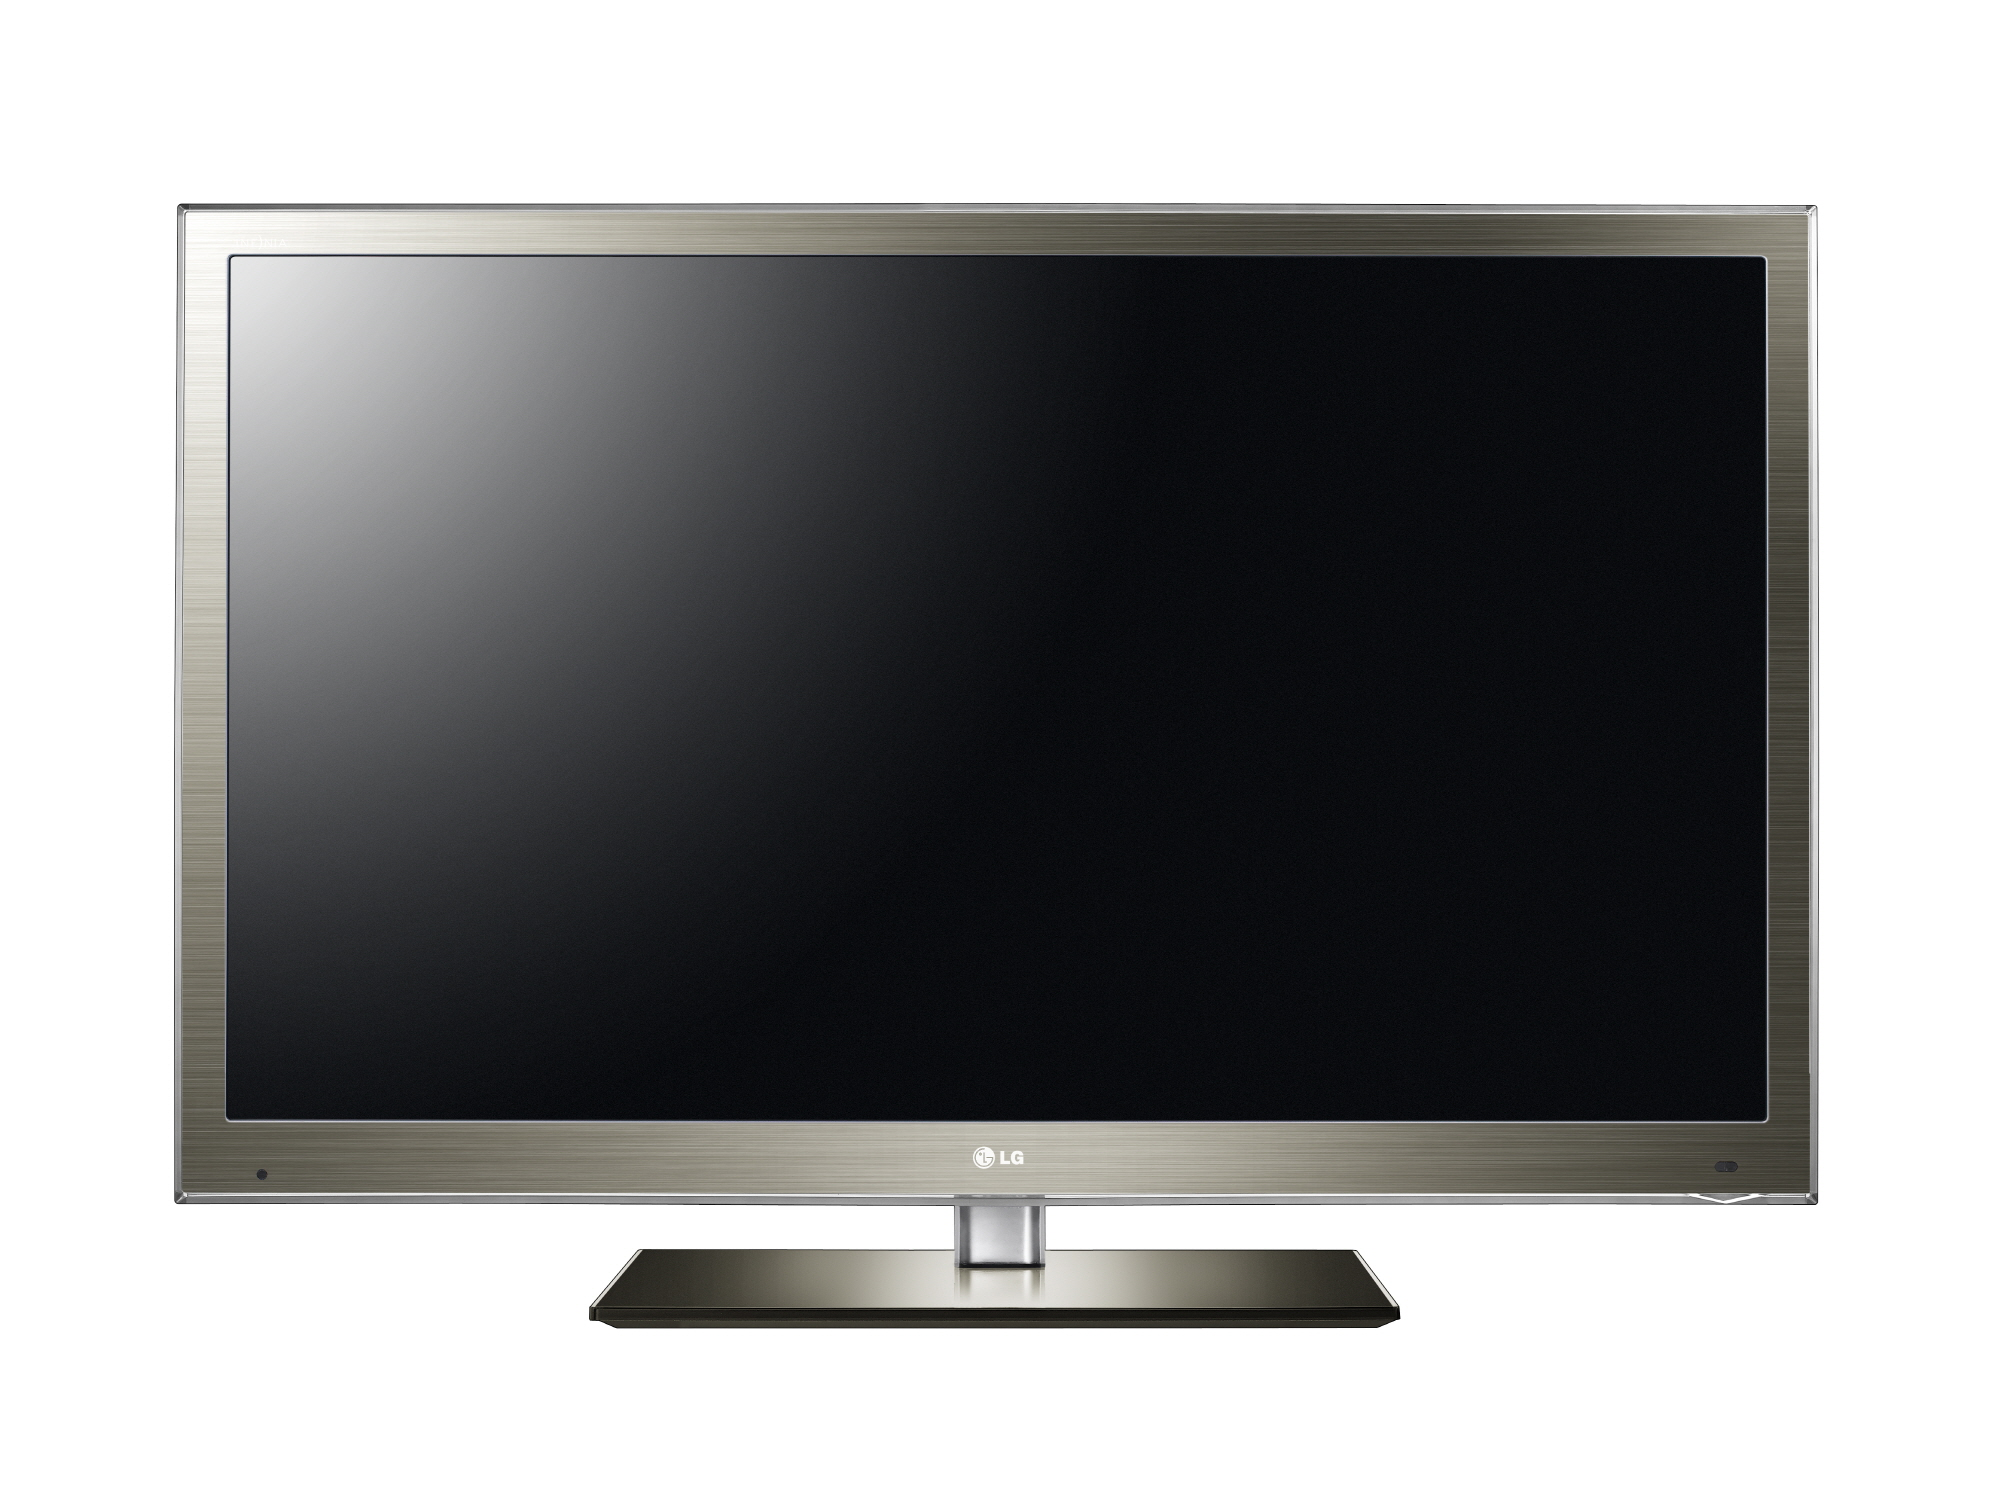 A front view of LG Full HD HDTV INFINIA model LW7700